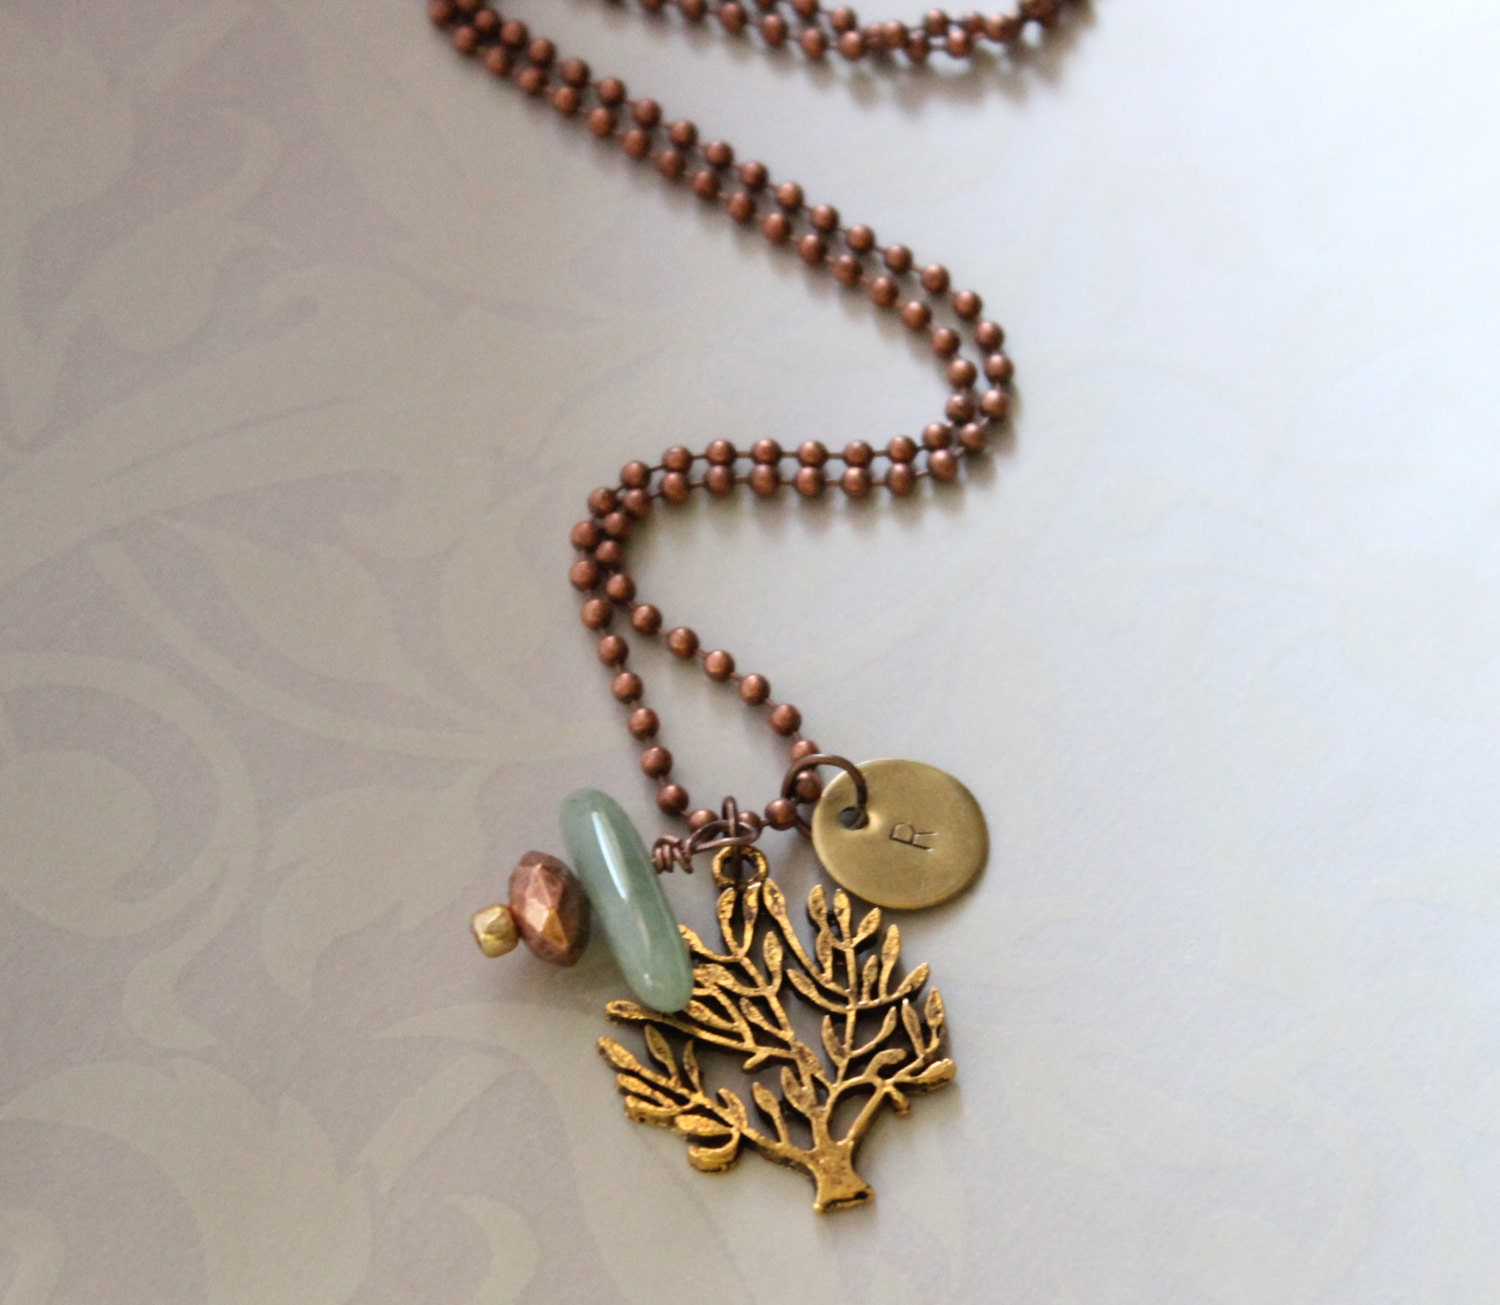 Lovely Tree Of Life With Aventurine Gem Stone In Antique Gold -Copper Tone -Personalize Initials Necklace - RTStyles